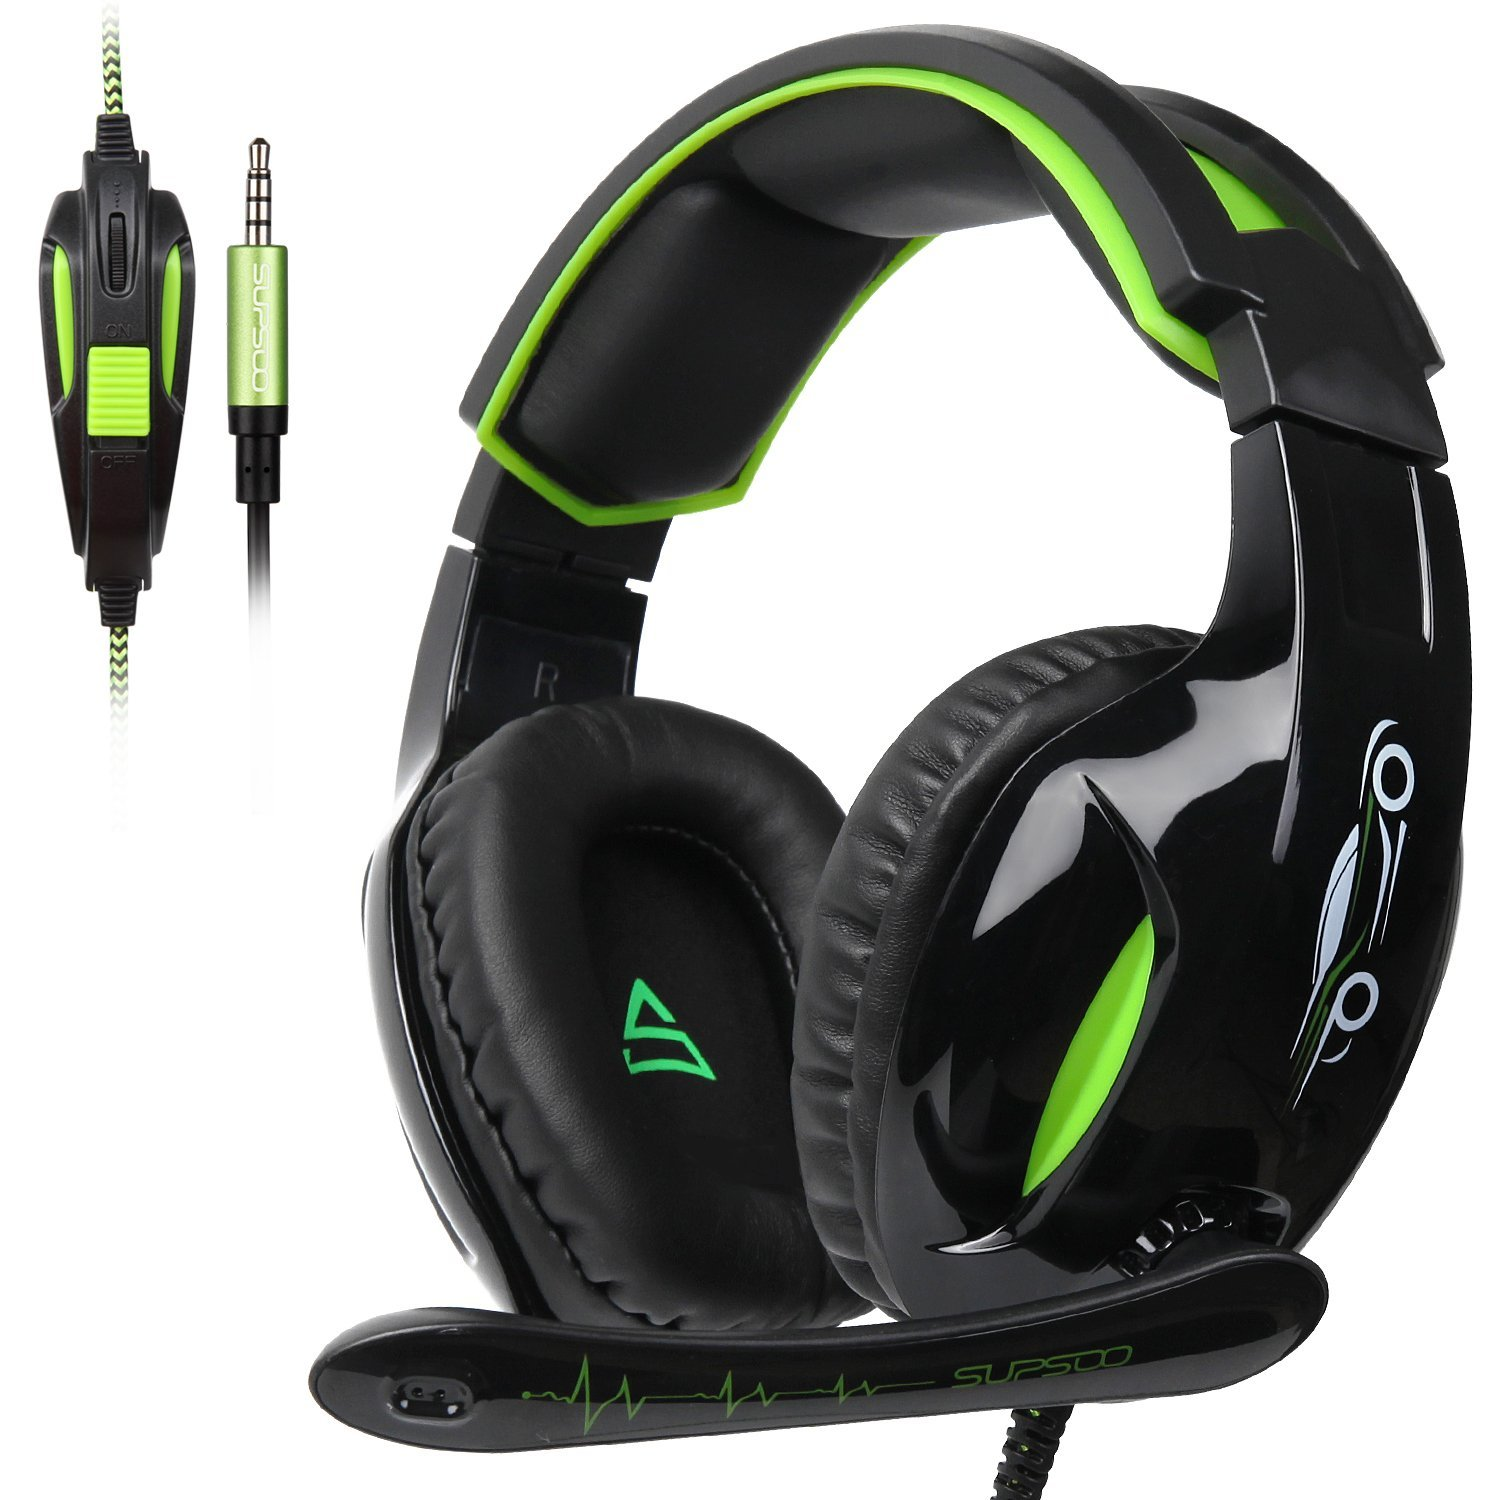 SUPSOO G813 Xbox One, PS4 Gaming Headset 3.5mm wired Over-ear Noise Isolating Microphone Volume Control for Mac PC Laptop PS4 Xbox one -Black